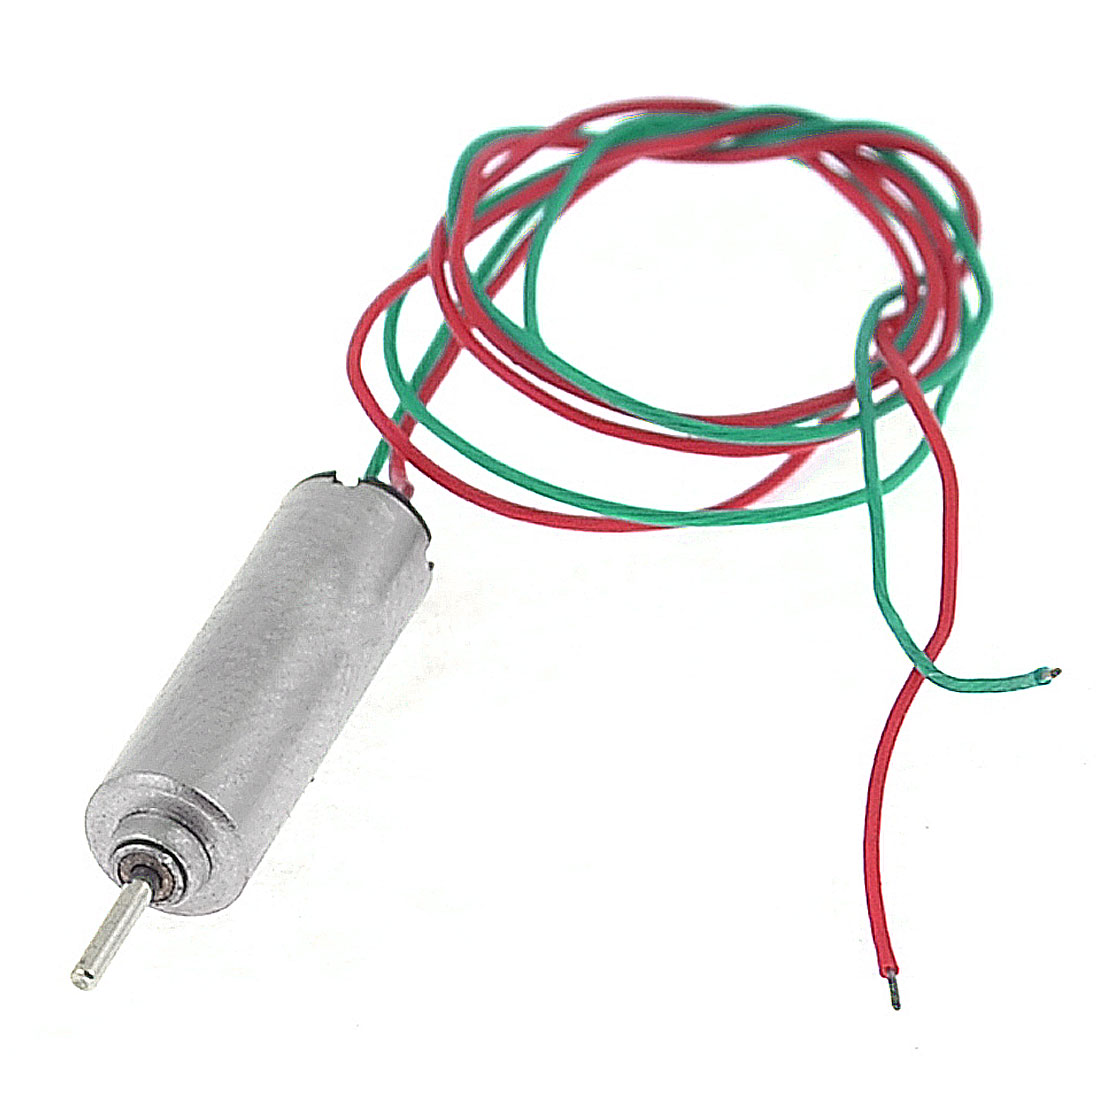 DC-12V-20000RPM-68mA-0-6mm-Dia-Shaft-4mm-Diameter-Replacement-Mini-Motor